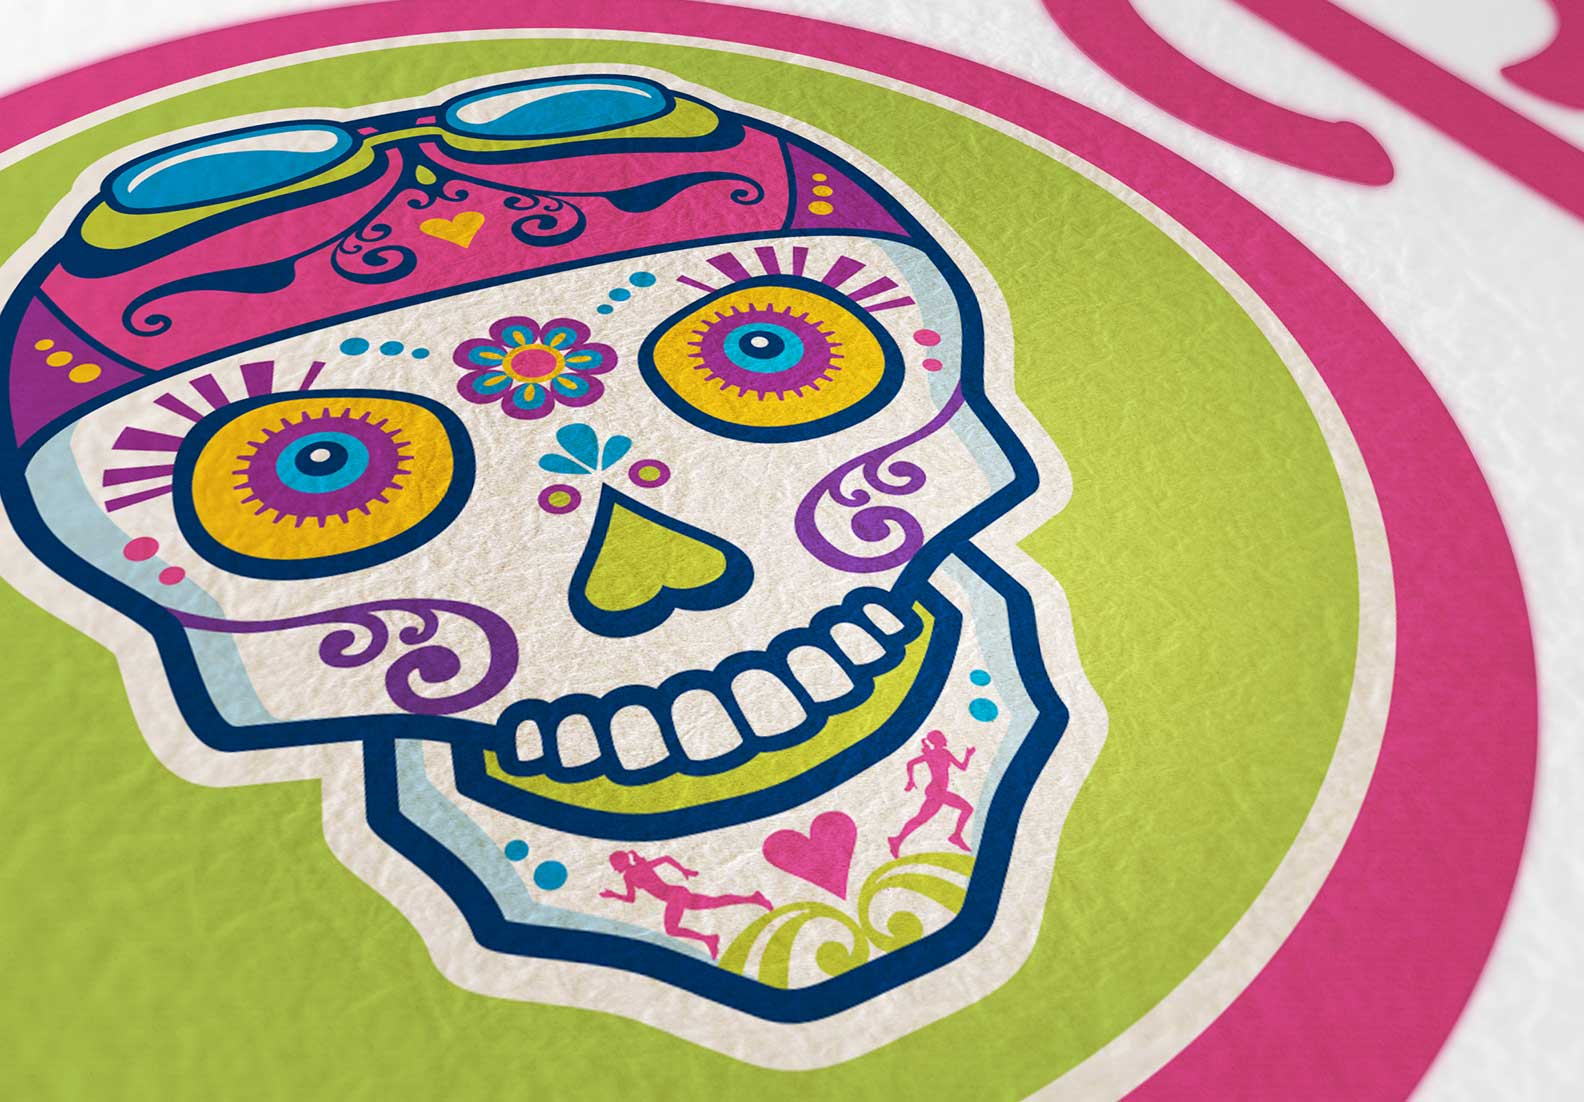 The client requested that the sugar skull feature elements of woman's multisport, swim cap and goggles, bike gears (eyes) and running (chin).